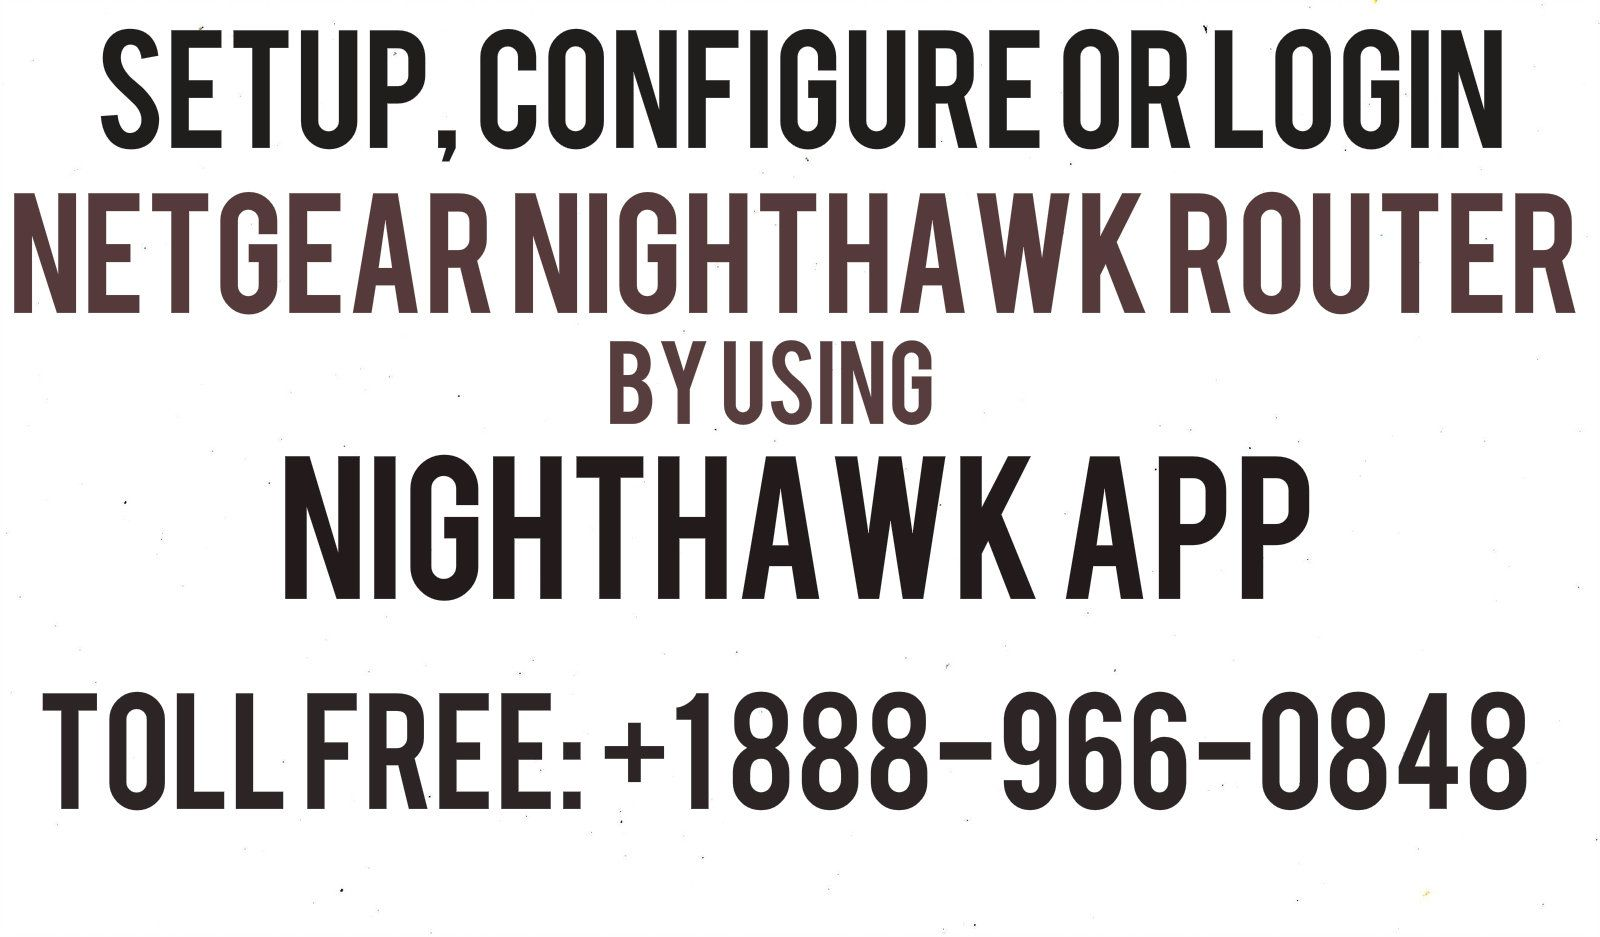 Nighthawk App is the application launched by the Netgear